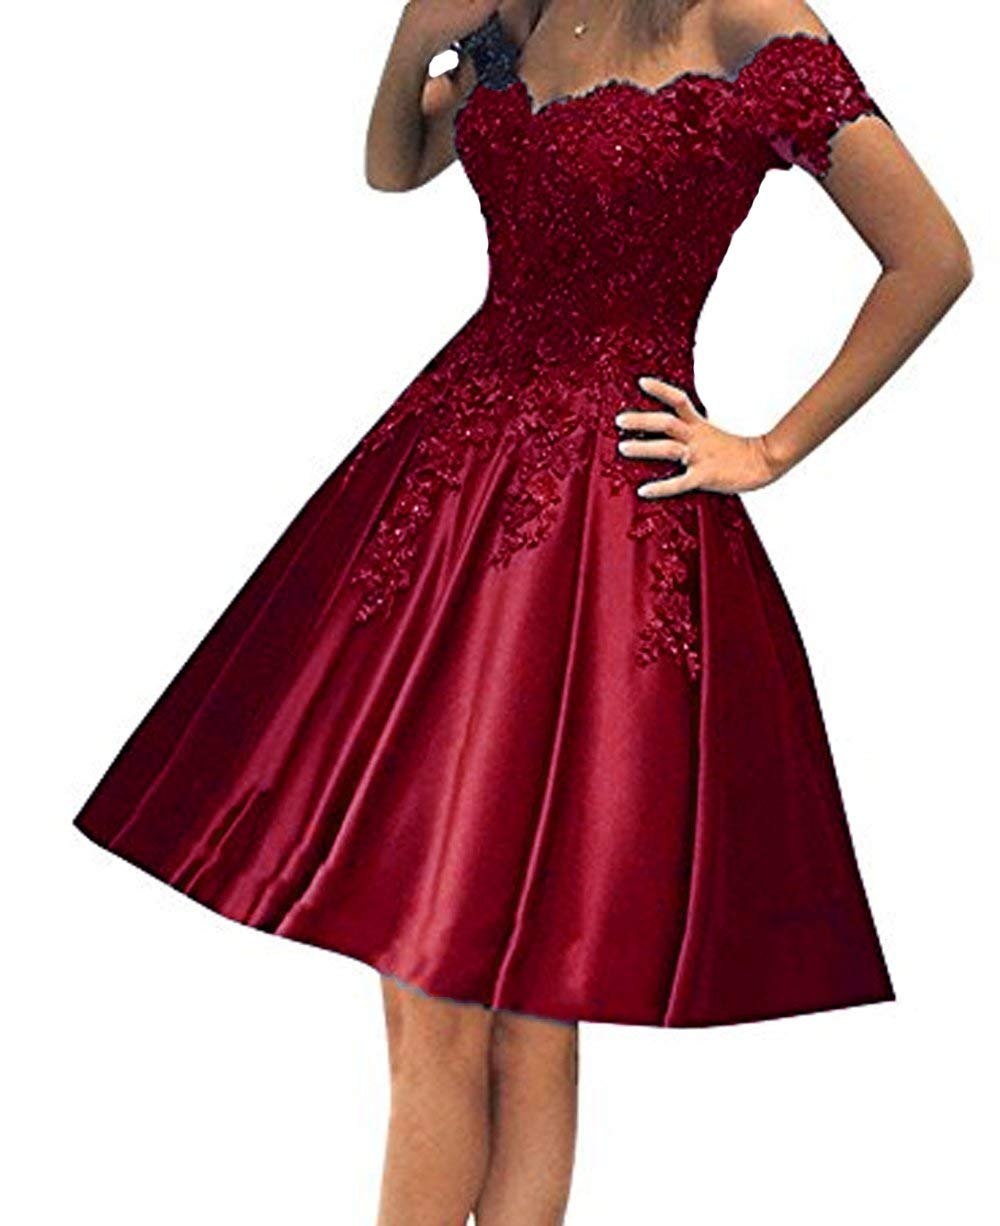 ee5259a3780 Scarisee Women s A-line Off-The-Shoulder Lace Appliqued Prom Homecoming  Dresses Formal Cocktail Party Gowns Knee-Length Burgundy 10